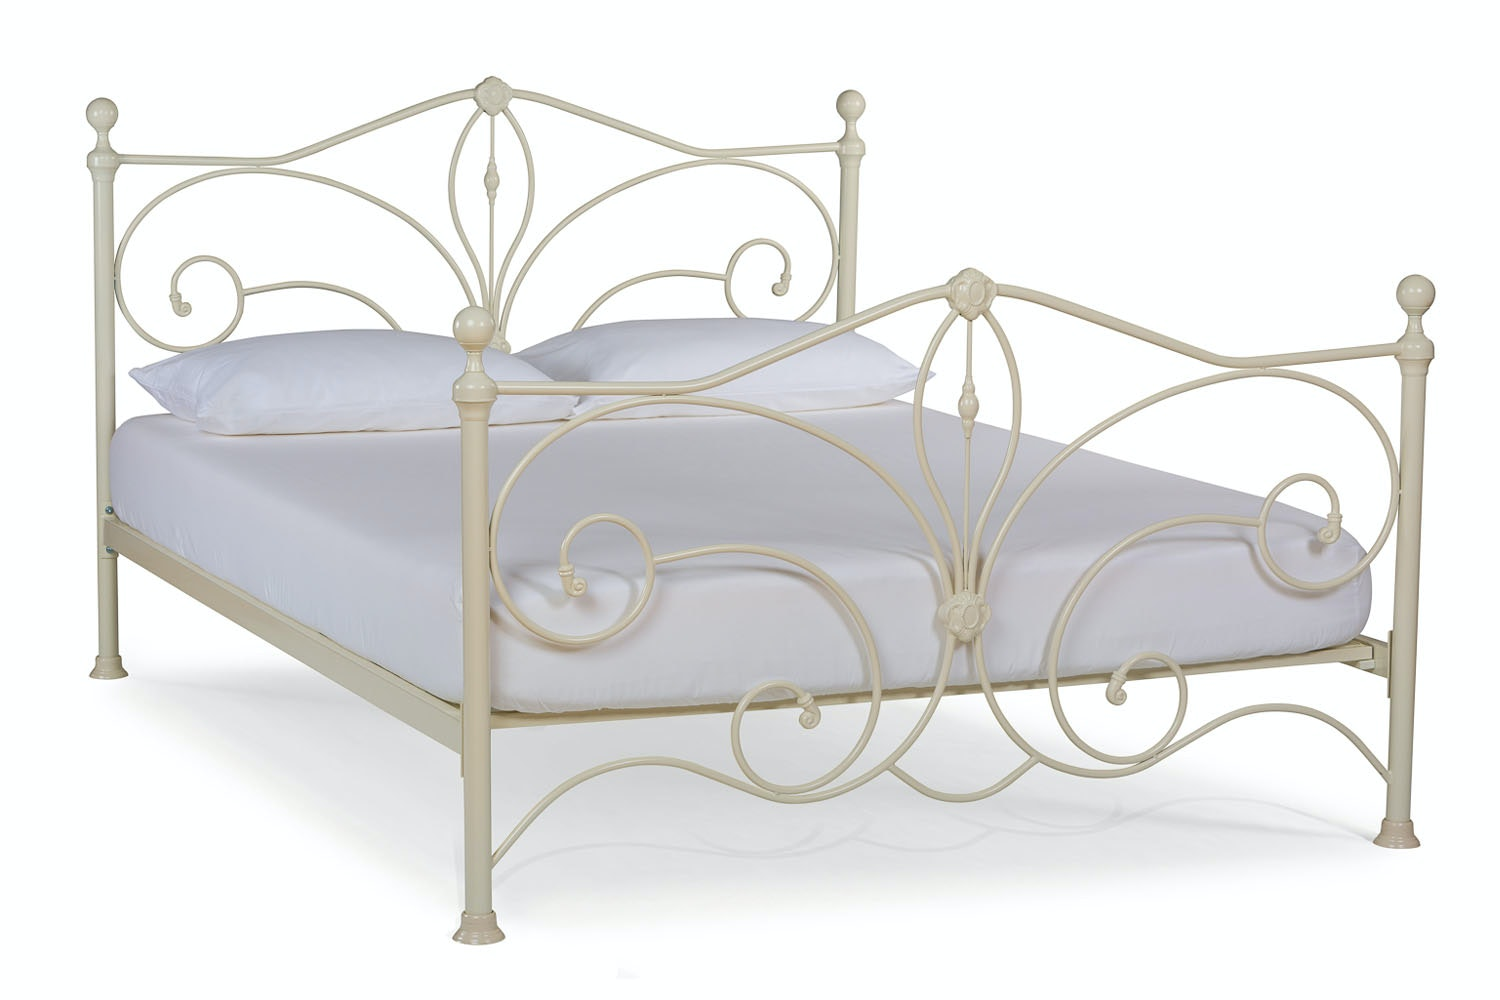 Downton King Bed Frame